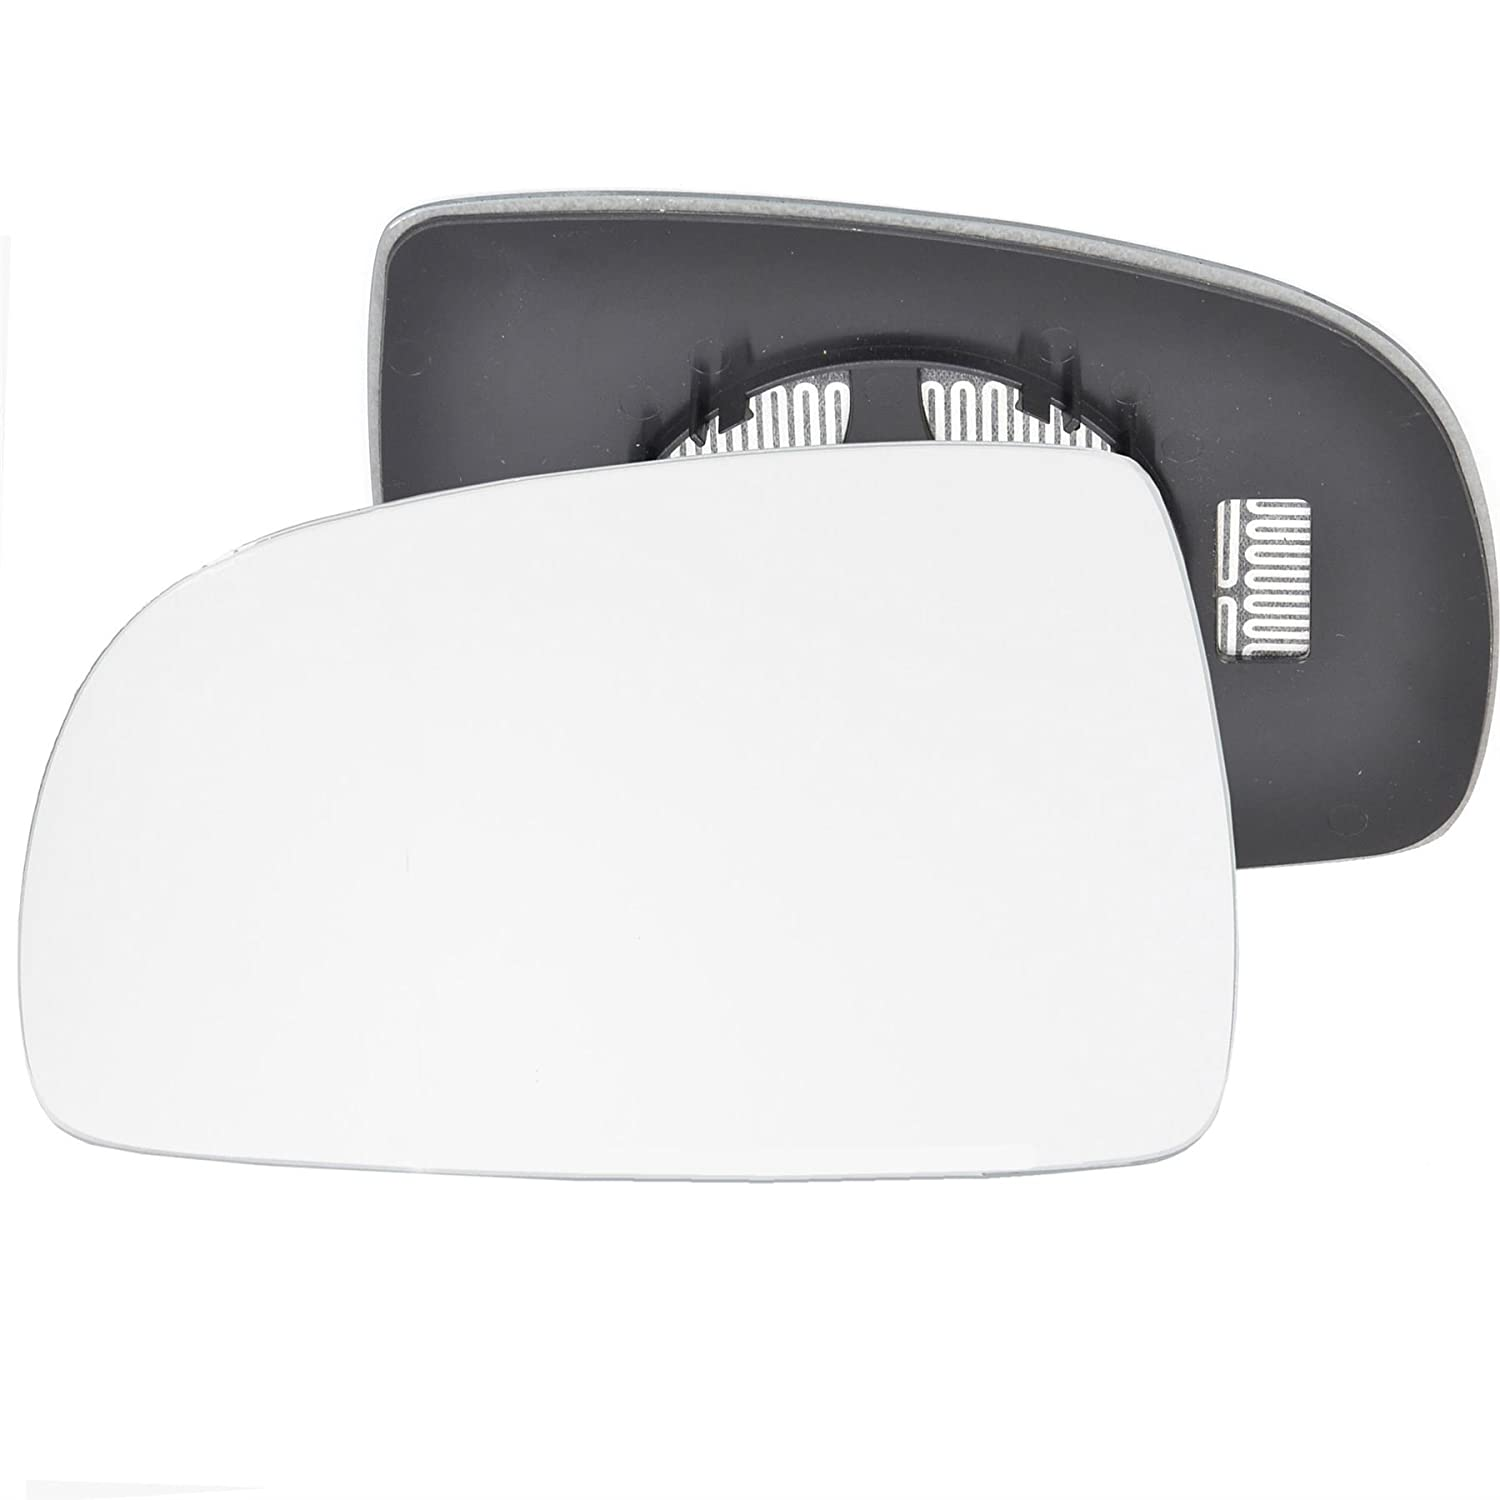 FITS NISSAN NOTE 2006-2012 DIRECT WING MIRROR GLASS CONVEX HEATED LEFT H//S